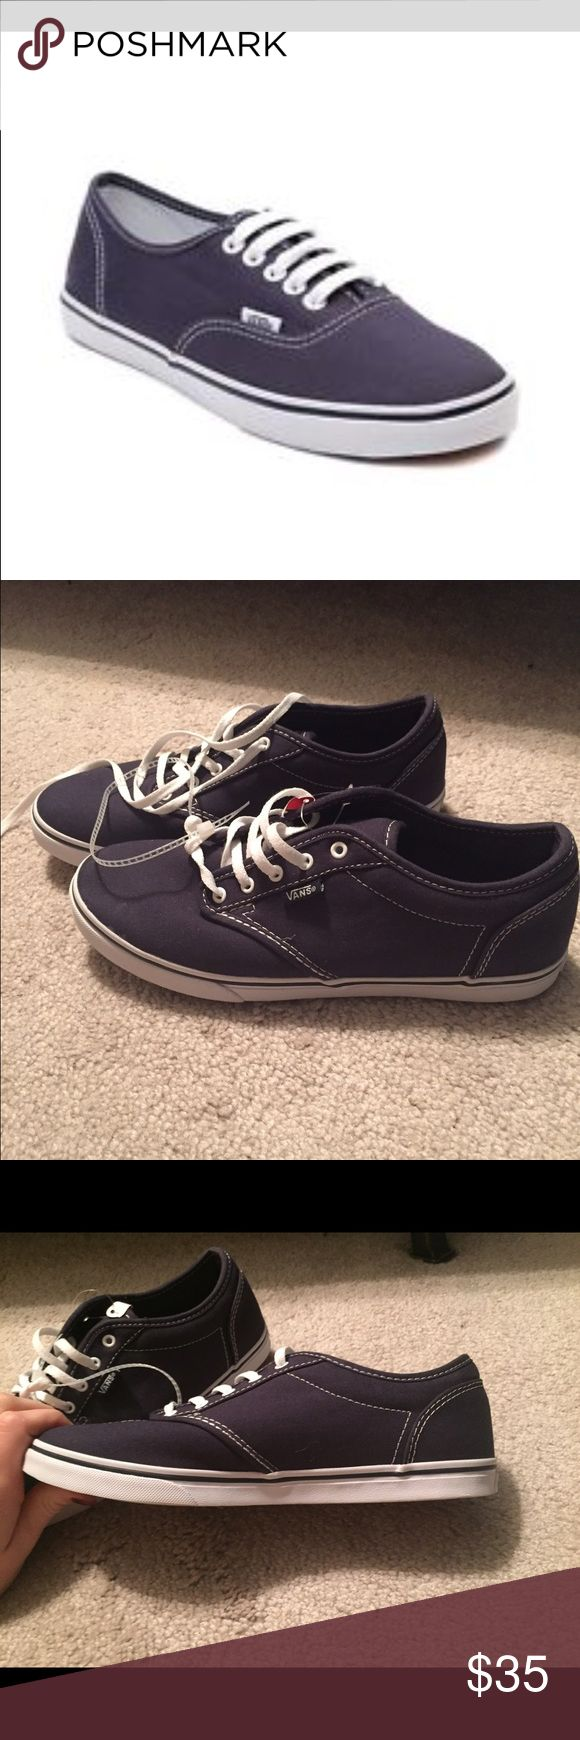 Women's Navy Vans Tb4r Canvas Sneakers. Size 7.5 BRAND NEW! Women's Navy Vans Tb4r Canvas Sneakers. Size 7.5 Vans Shoes Sneakers